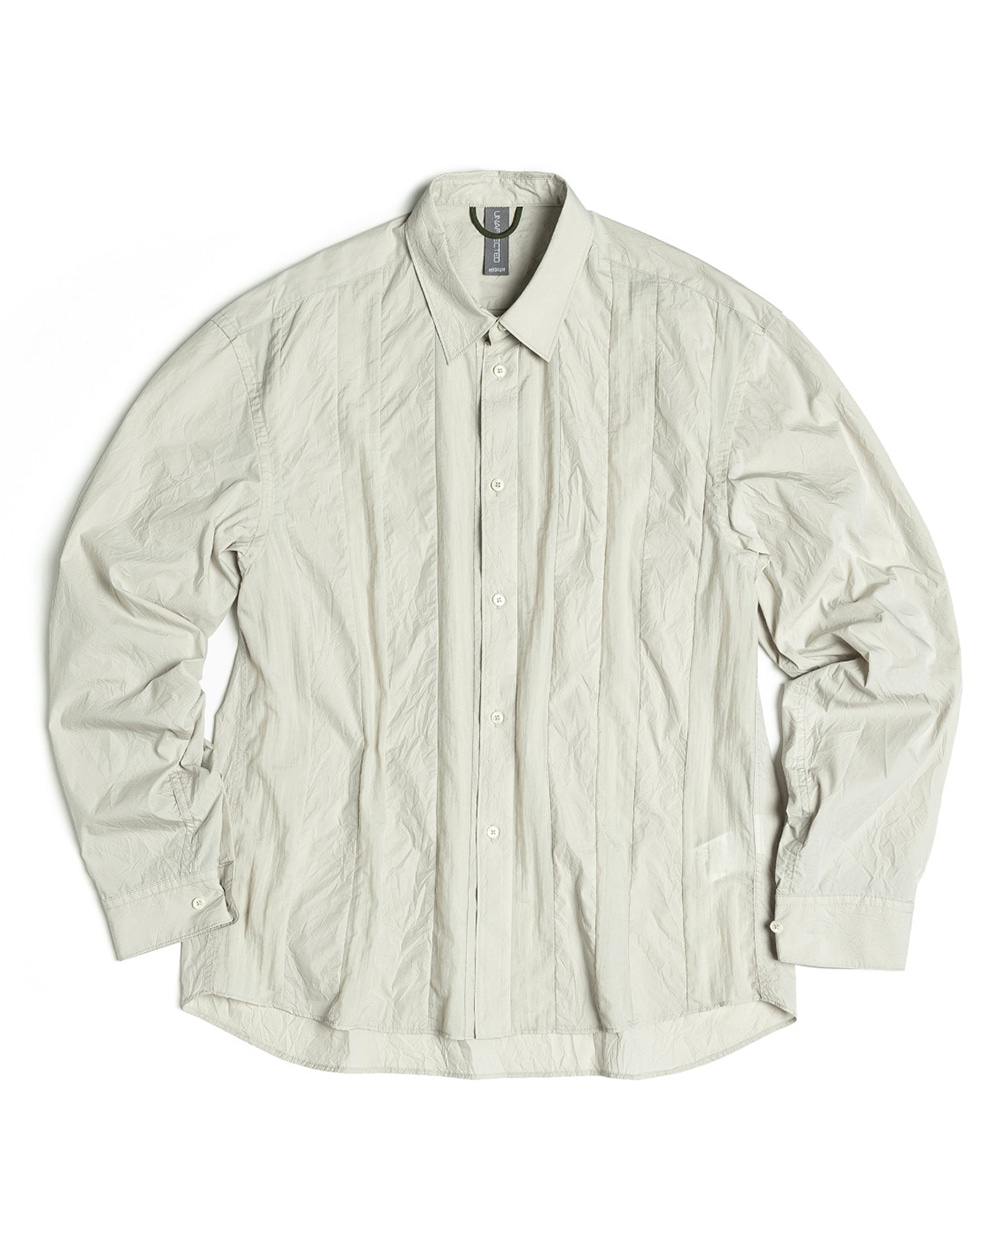 언어펙티드 CONTRAST PANEL SHIRT (Light grey)